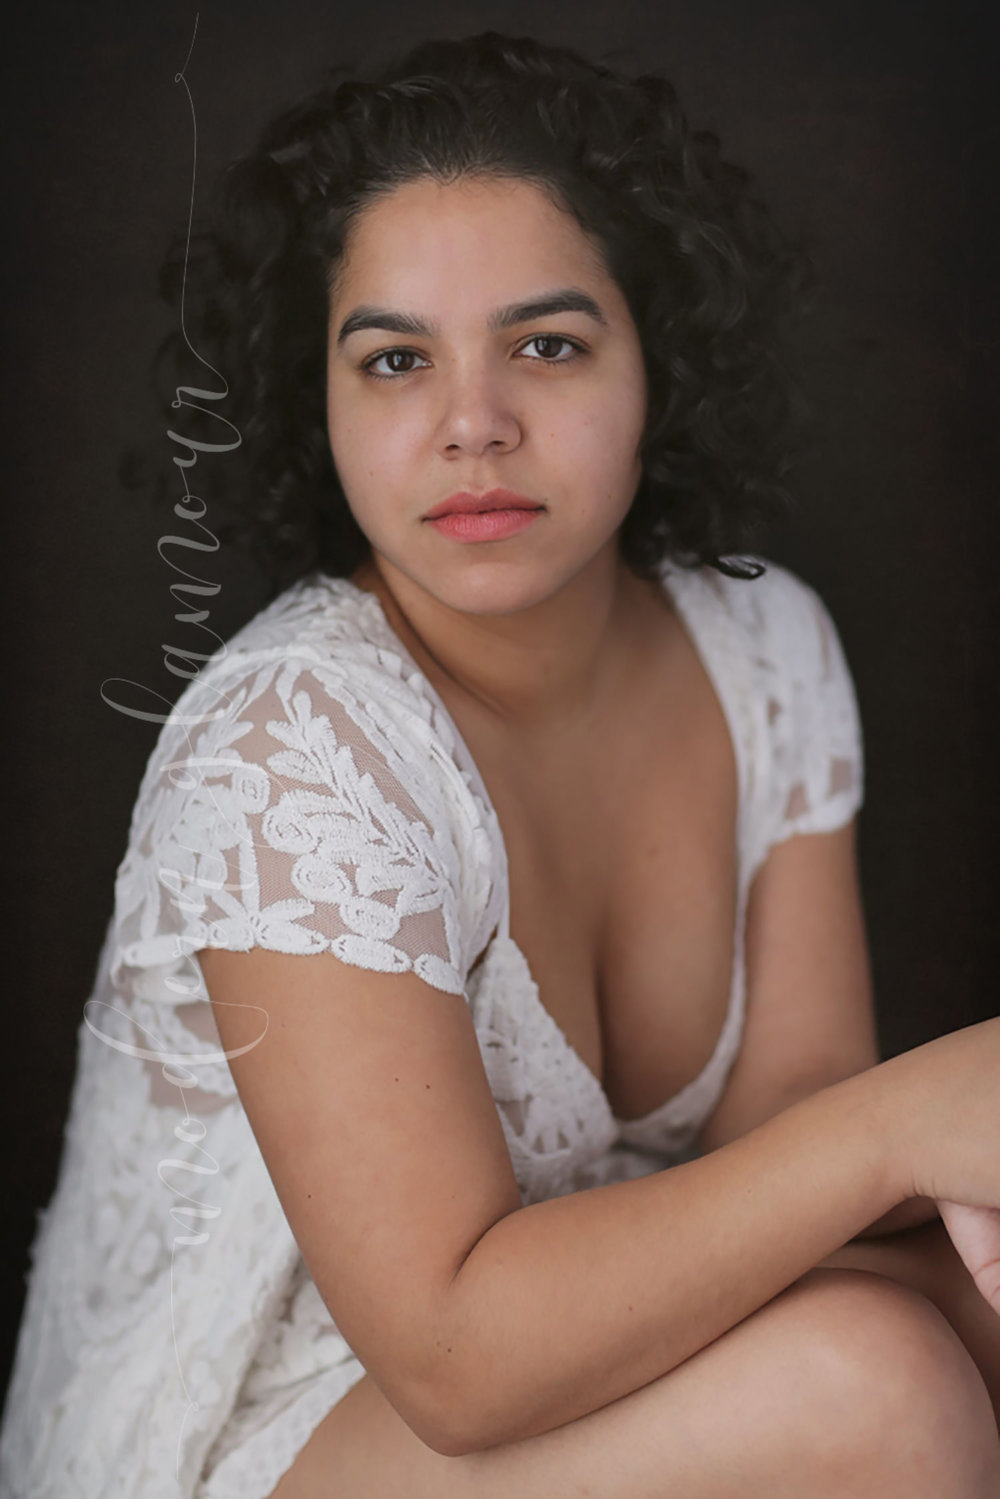 boudoir photos boston curly hair no make up